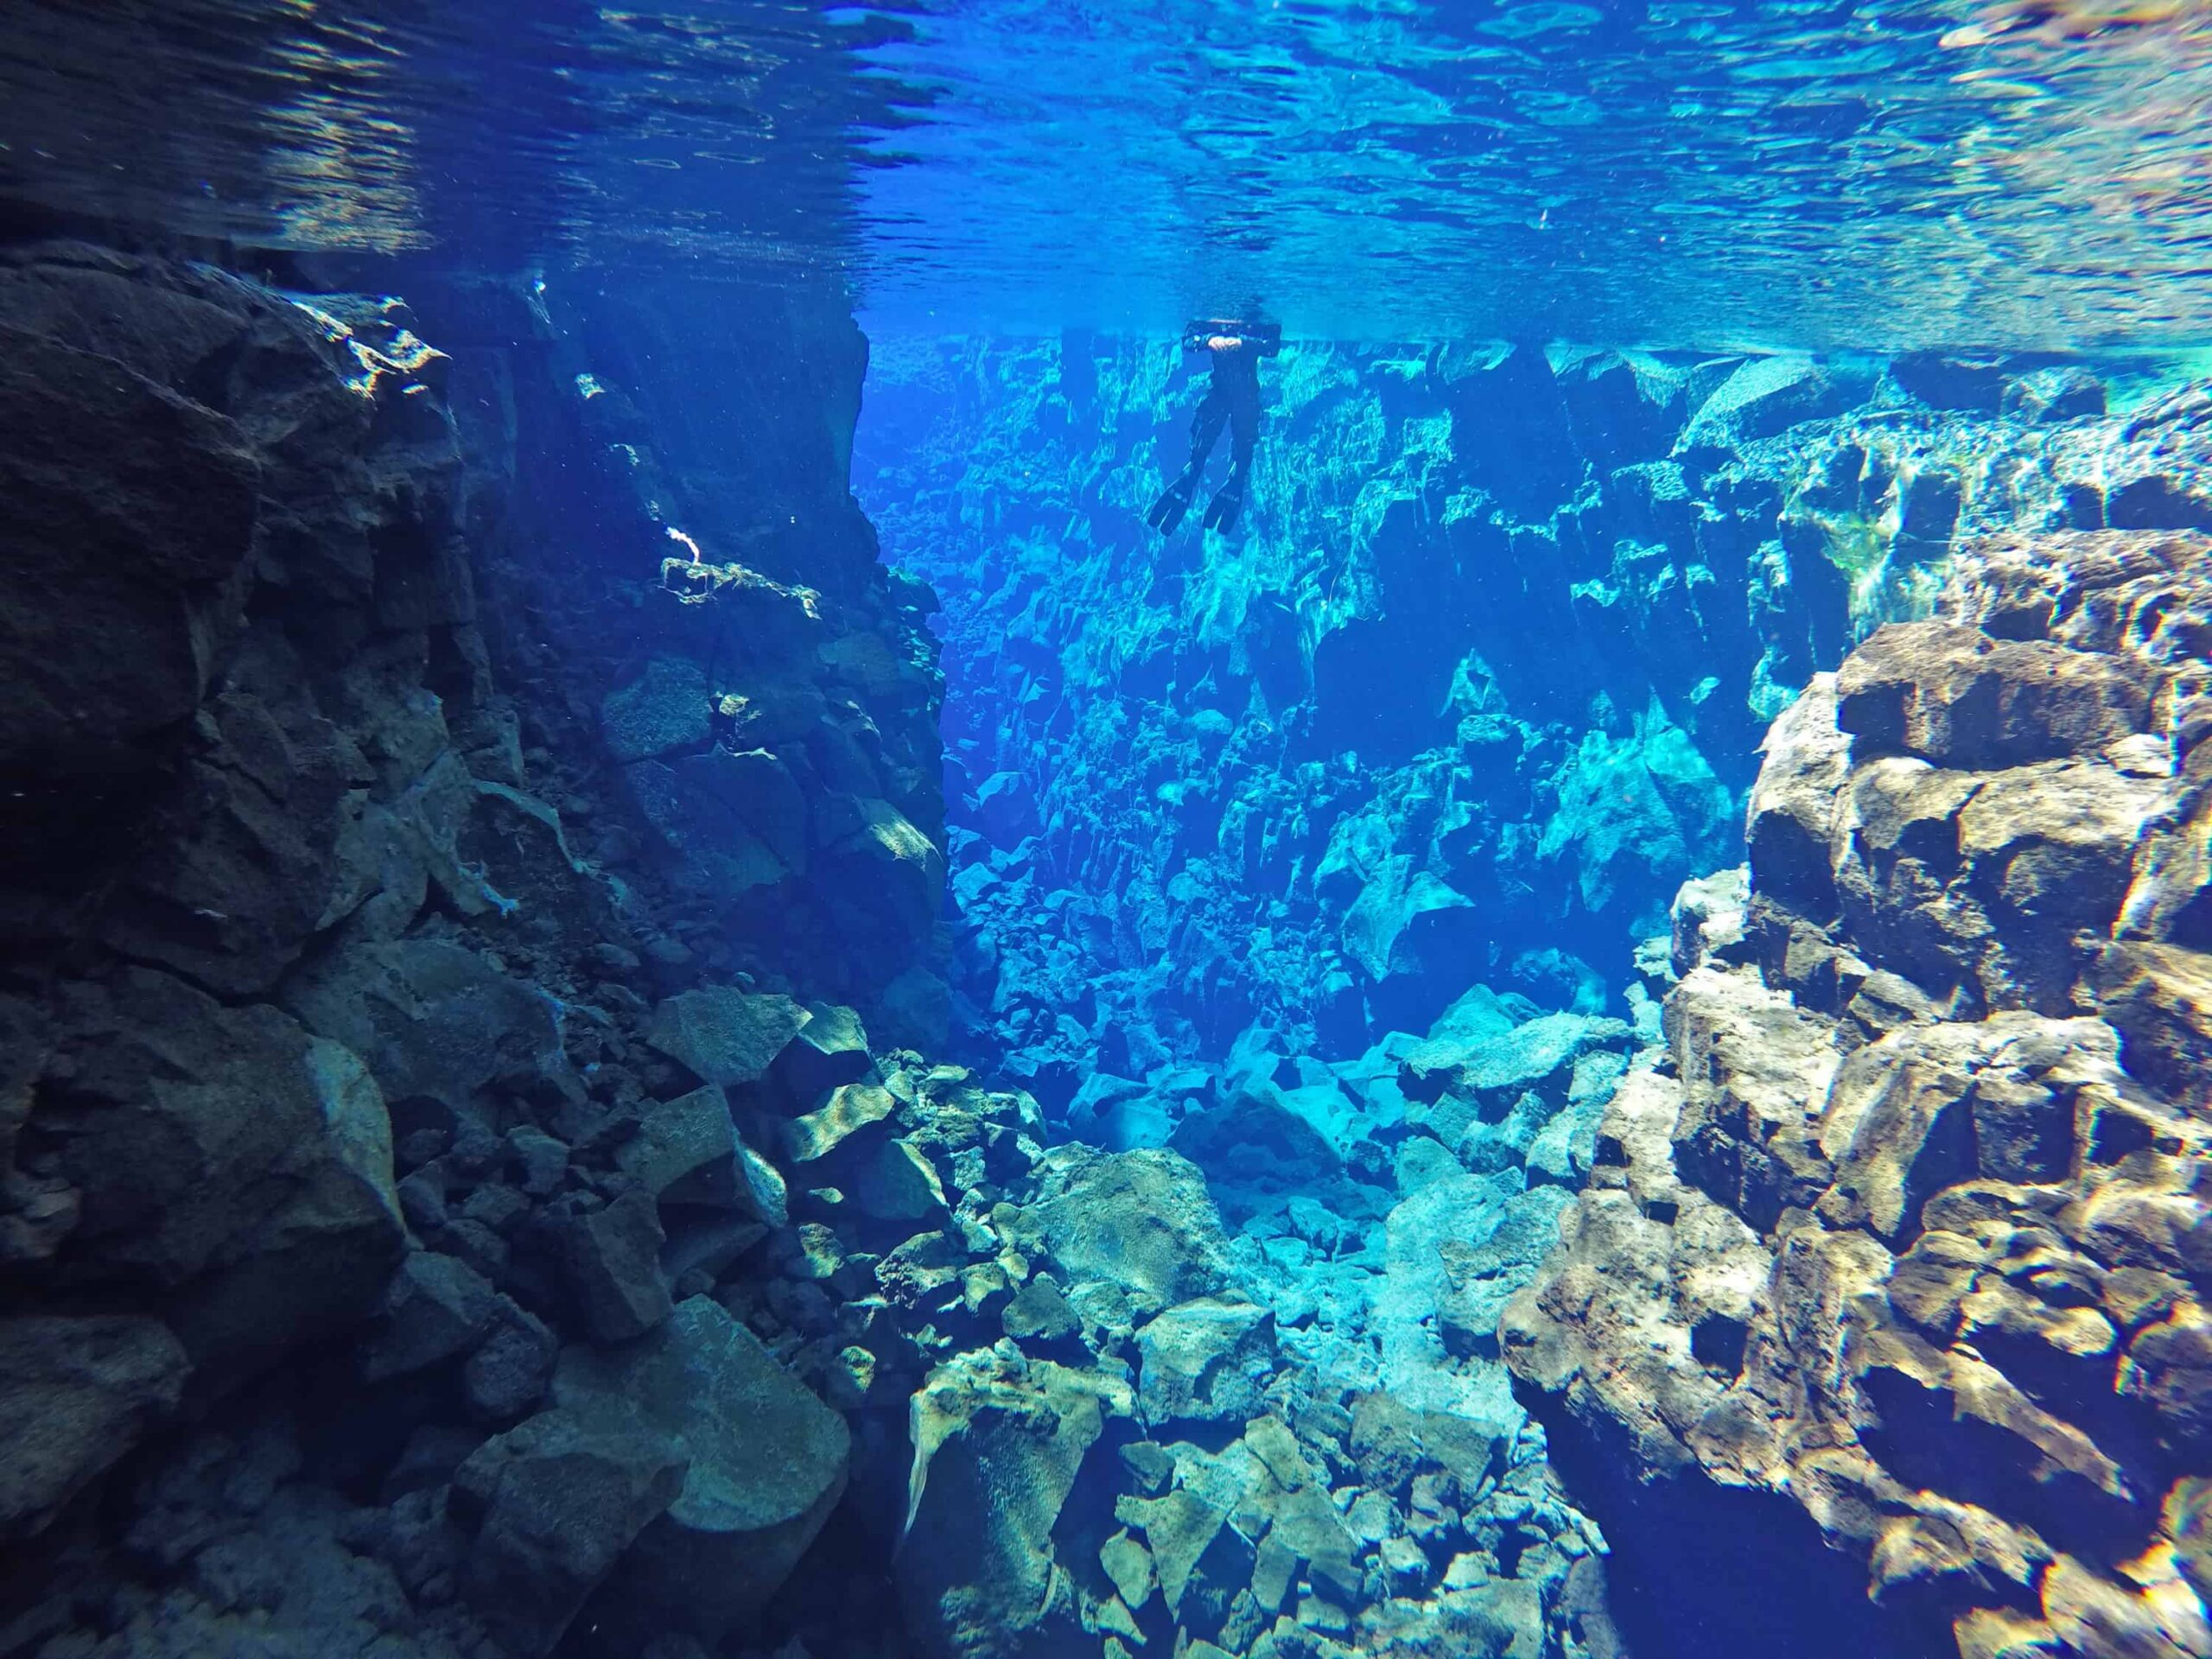 Silfra fissure in Þingvellir National Park - the rift between continents in Iceland north America and Europe